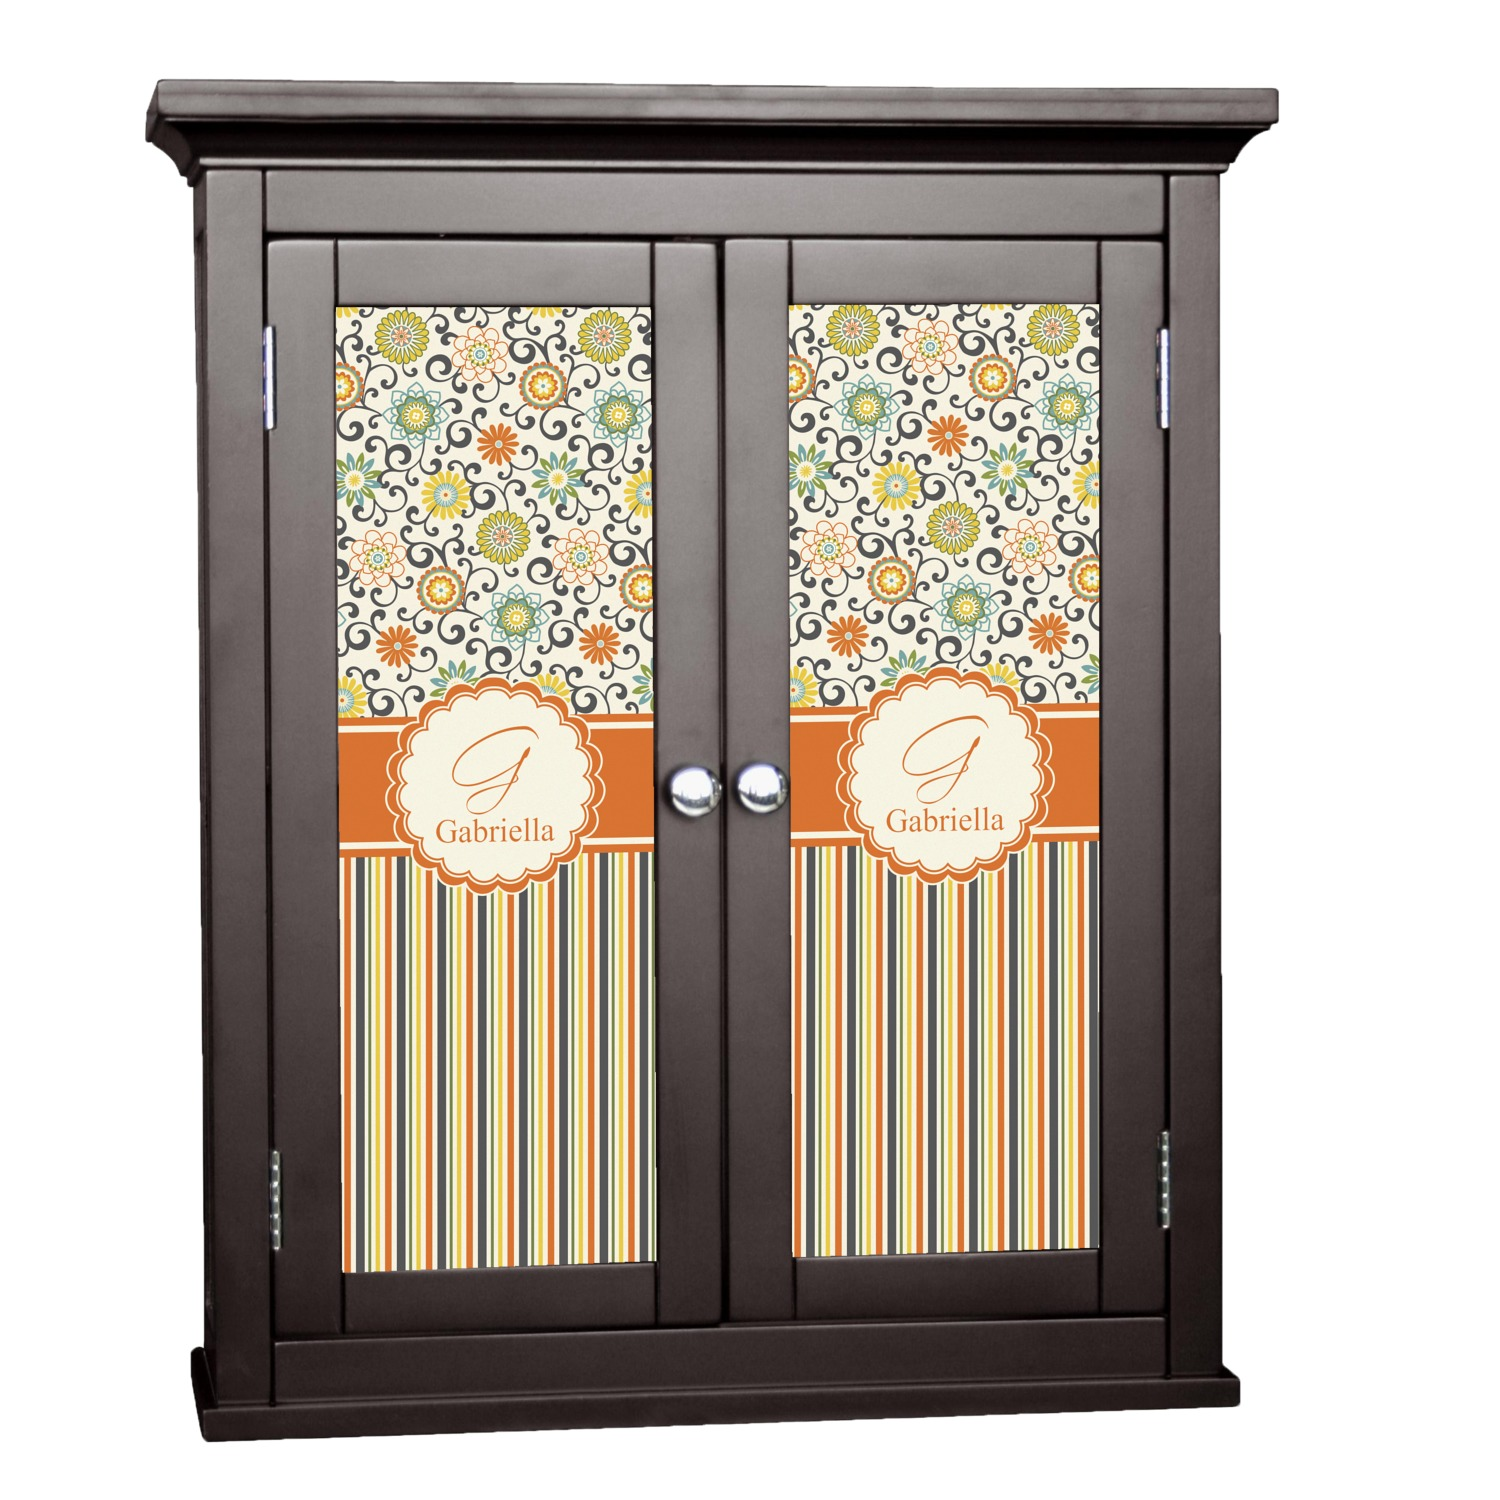 Swirls floral stripes cabinet decal large for Kitchen cabinets lowes with how to make decal stickers